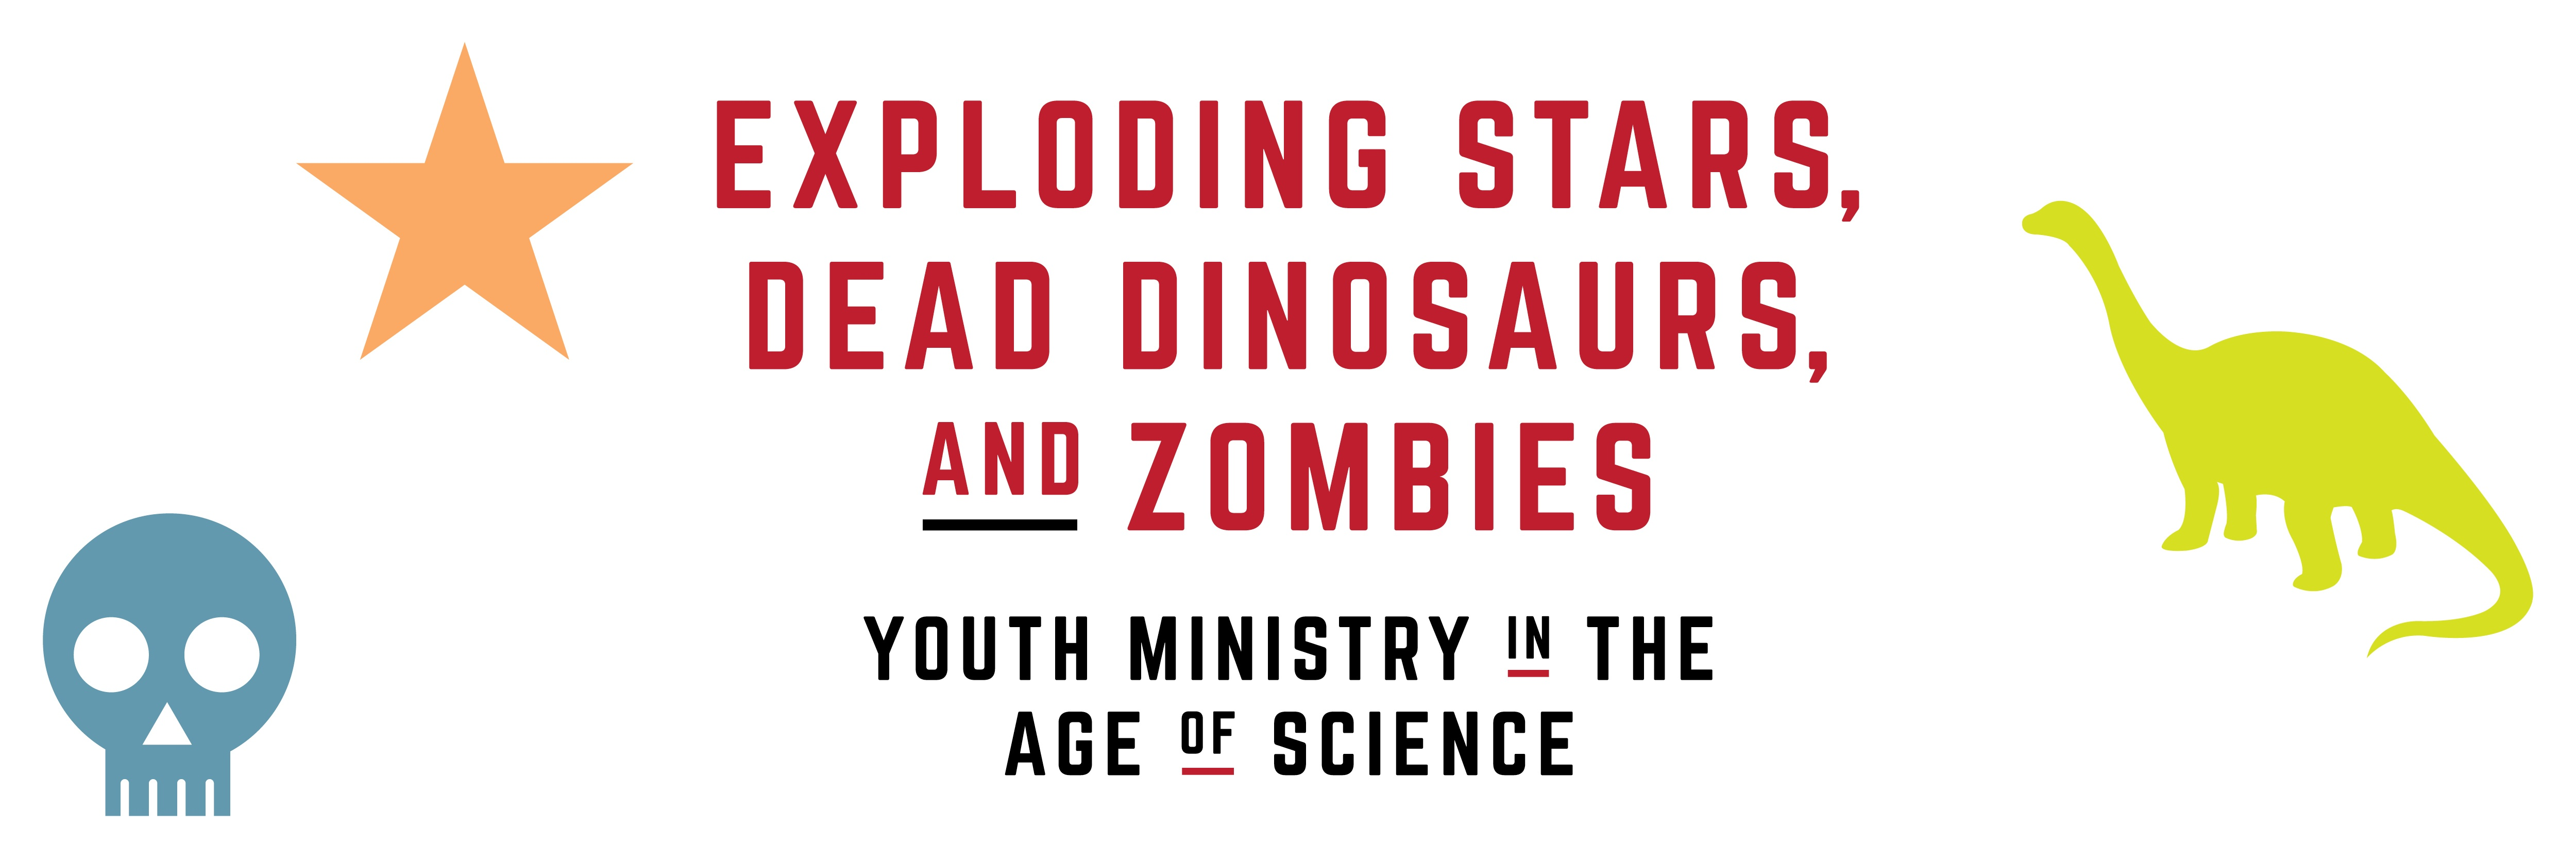 """Exploding Stars, Dead Dinosaurs, and Zombies"" by Andrew Root 